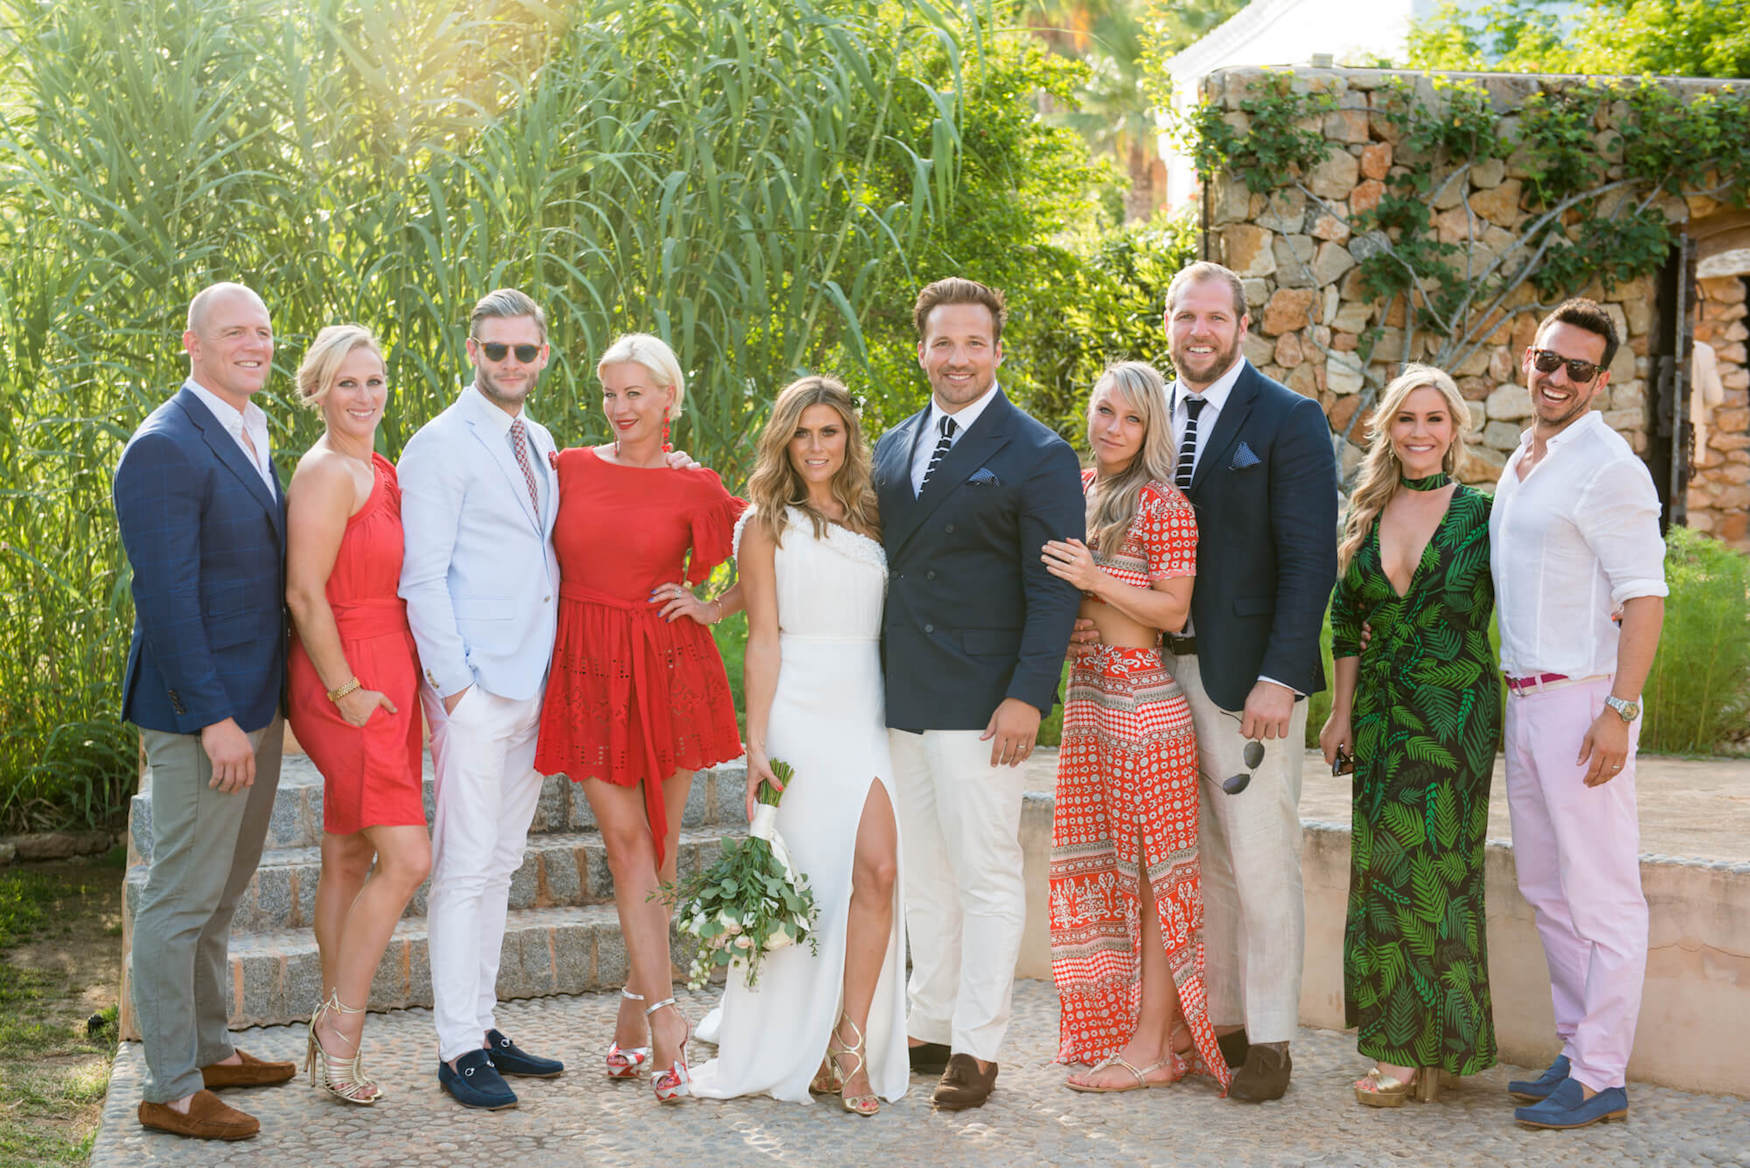 bridal party hello magazine zoe hardman paul Doran-Jones princess zara garden group photo